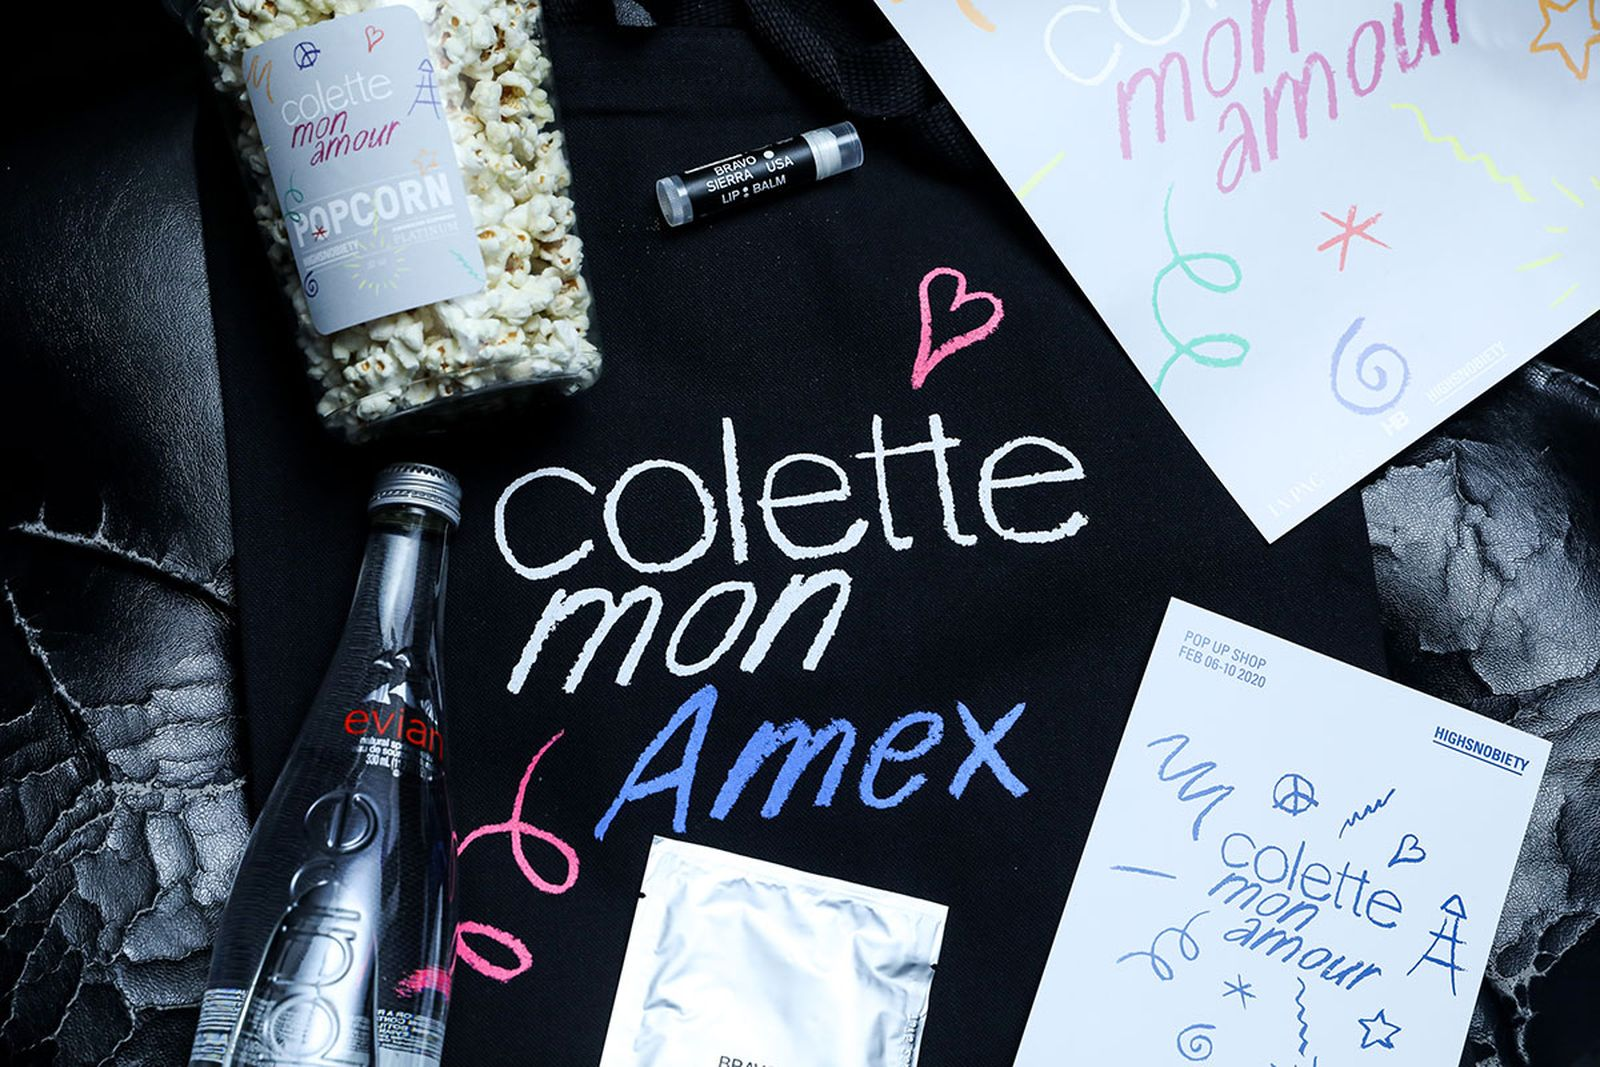 colette-mon-amour-documentary-nyc-premiere-recap-06